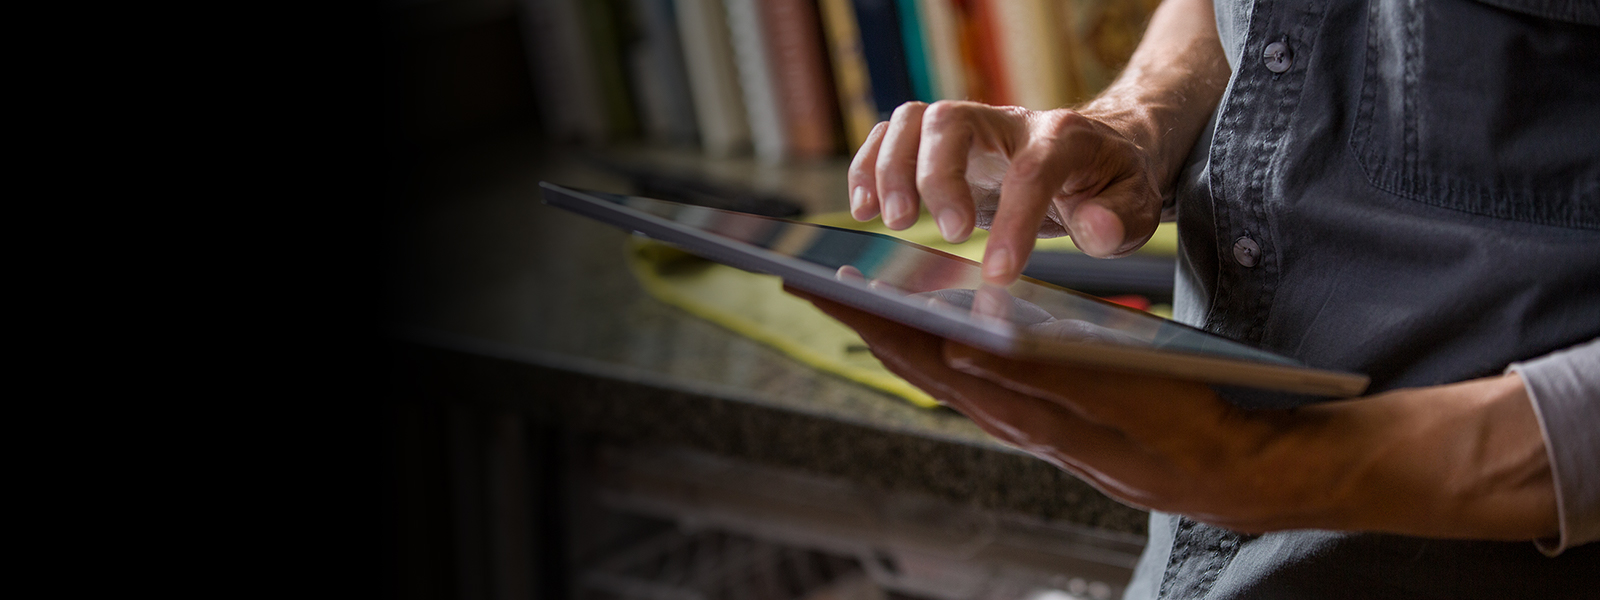 A man holding a tablet.